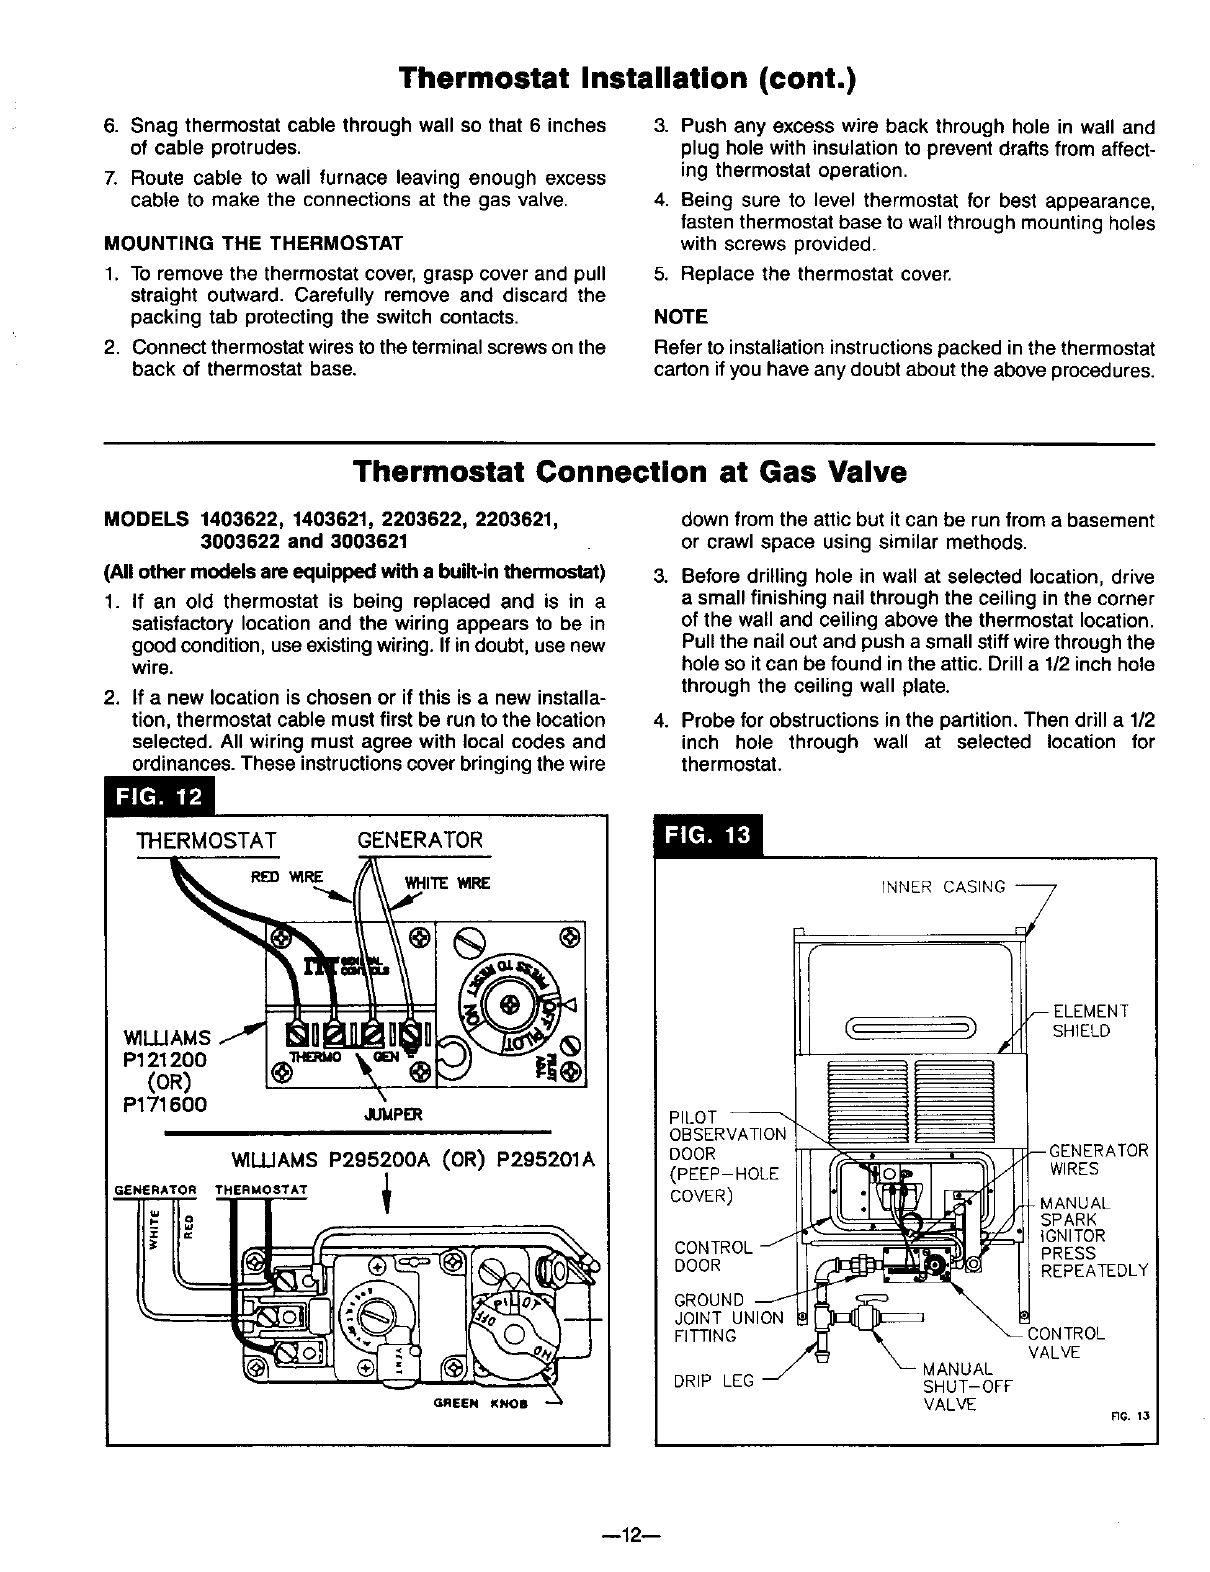 Williams Wall Furnace Thermostat Wiring Daily Update Diagram Rcs Tbz48 Diagrams Page 12 Of 1403612 User Guide